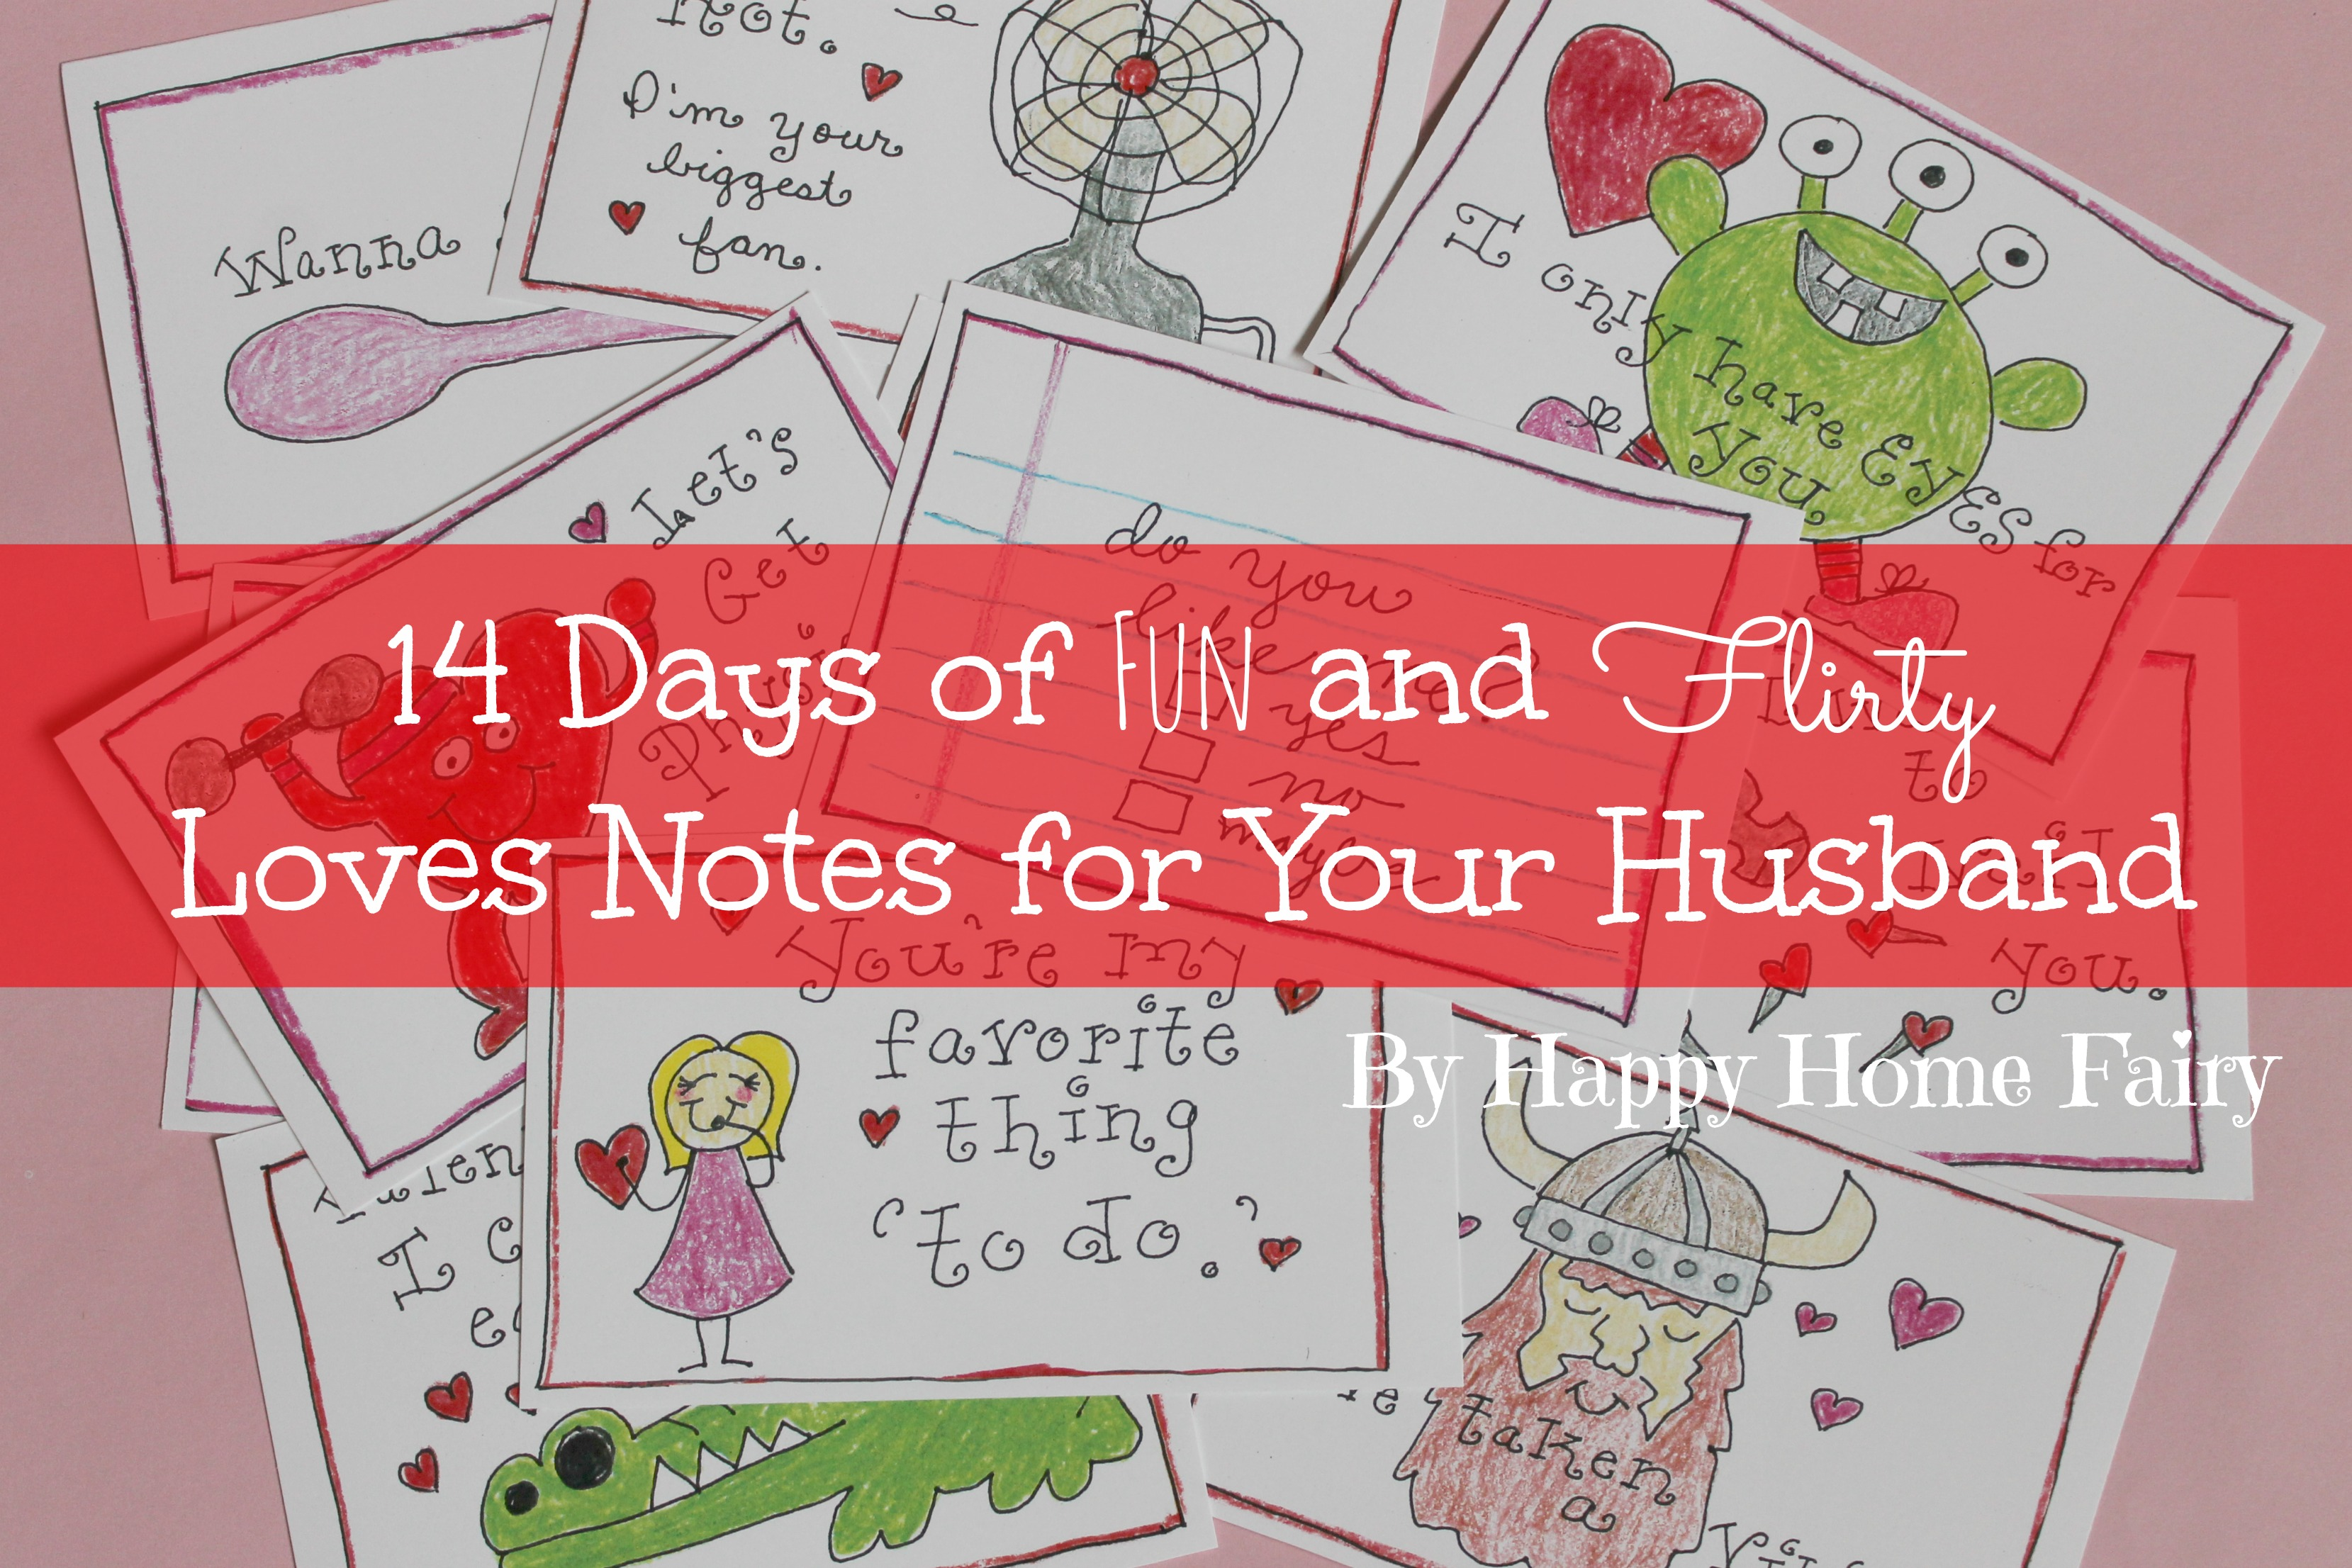 picture relating to Free Printable Valentines Day Cards for Your Husband titled 14 Times of Entertaining and Flirty Take pleasure in Notes for Your Spouse - Totally free